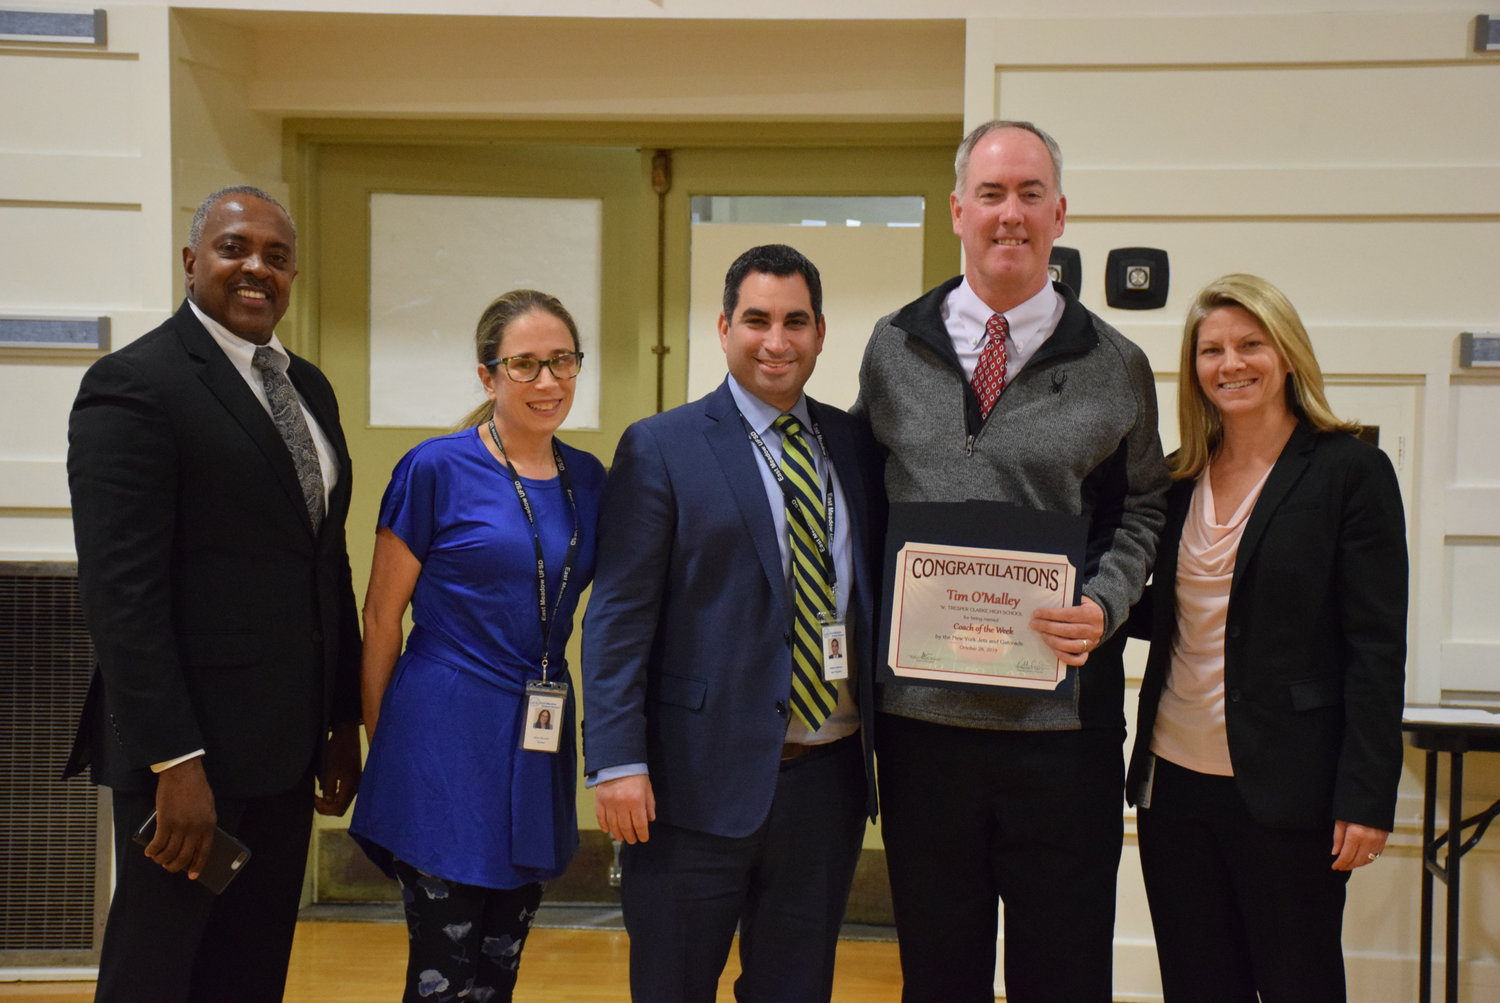 W.T. Clarke High School football coach Tim O'Malley, second-from-right, earned the High School Coach of the Week by the New York Jets. He was with Superintendent Dr. Kenneth Card Jr., left, Board Vice President Alisa Baroukh, Board President Matthew Melnick and Director of Health, Physical Education and Athletics Kristi Detor.